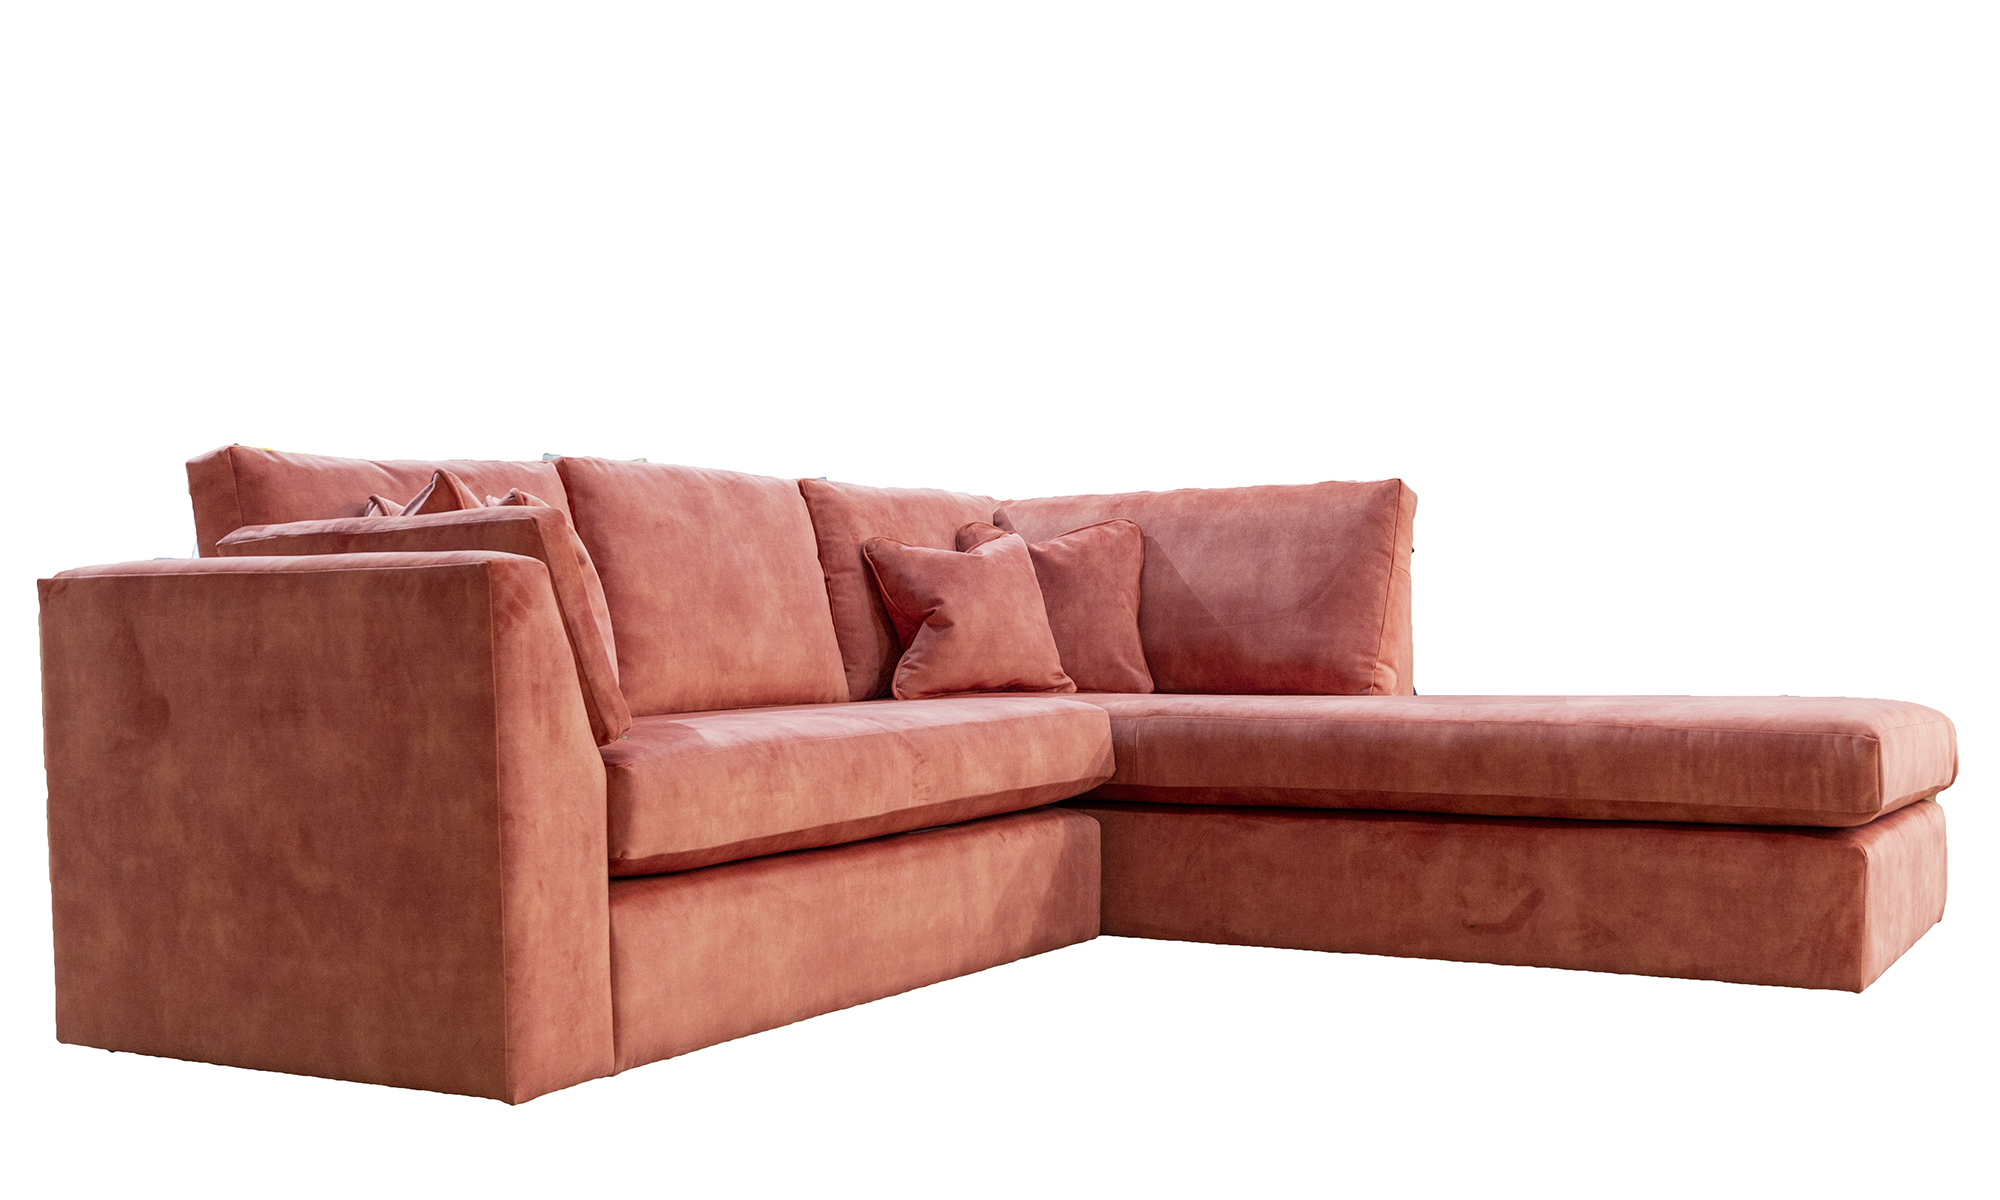 Como-Chaise-Sofa-Side-in-Lovely-Coral-Gold-Collection-Fabric